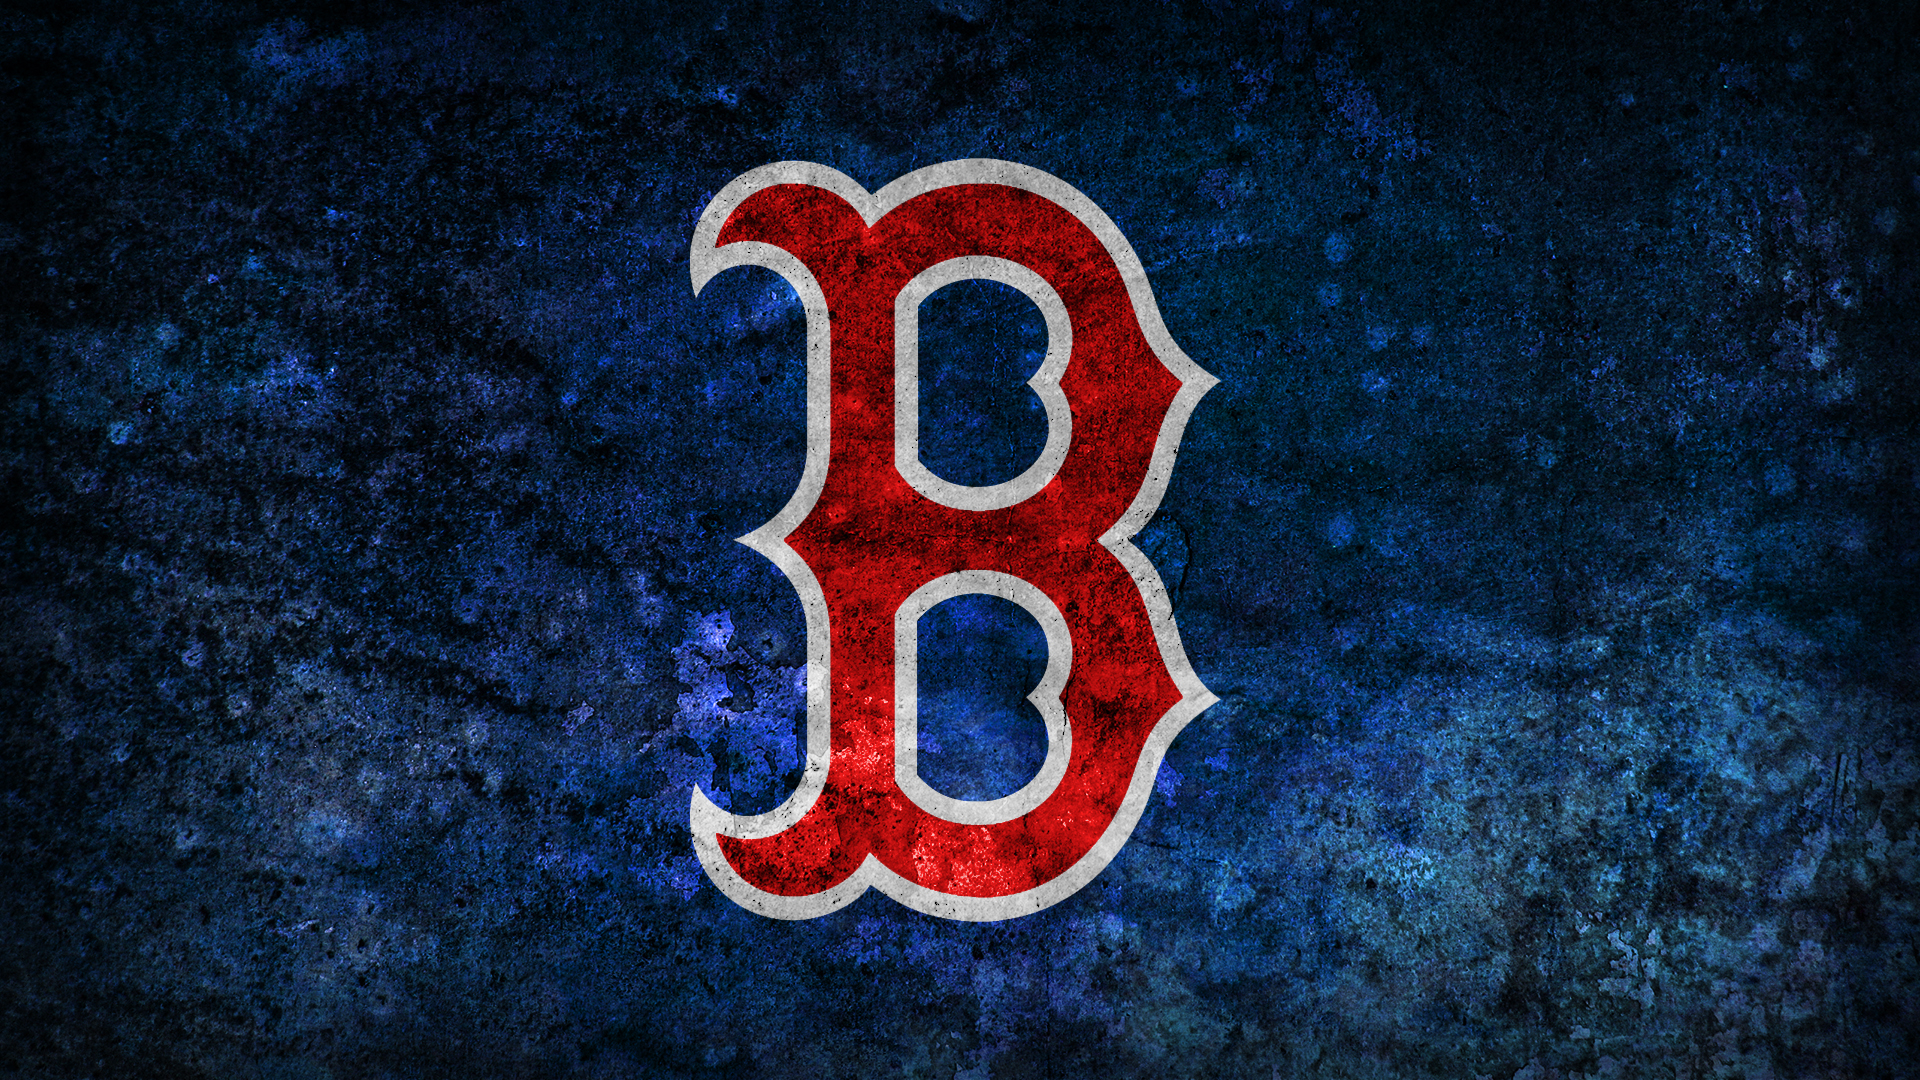 Boston Red Sox Backgrounds Download 1920x1080